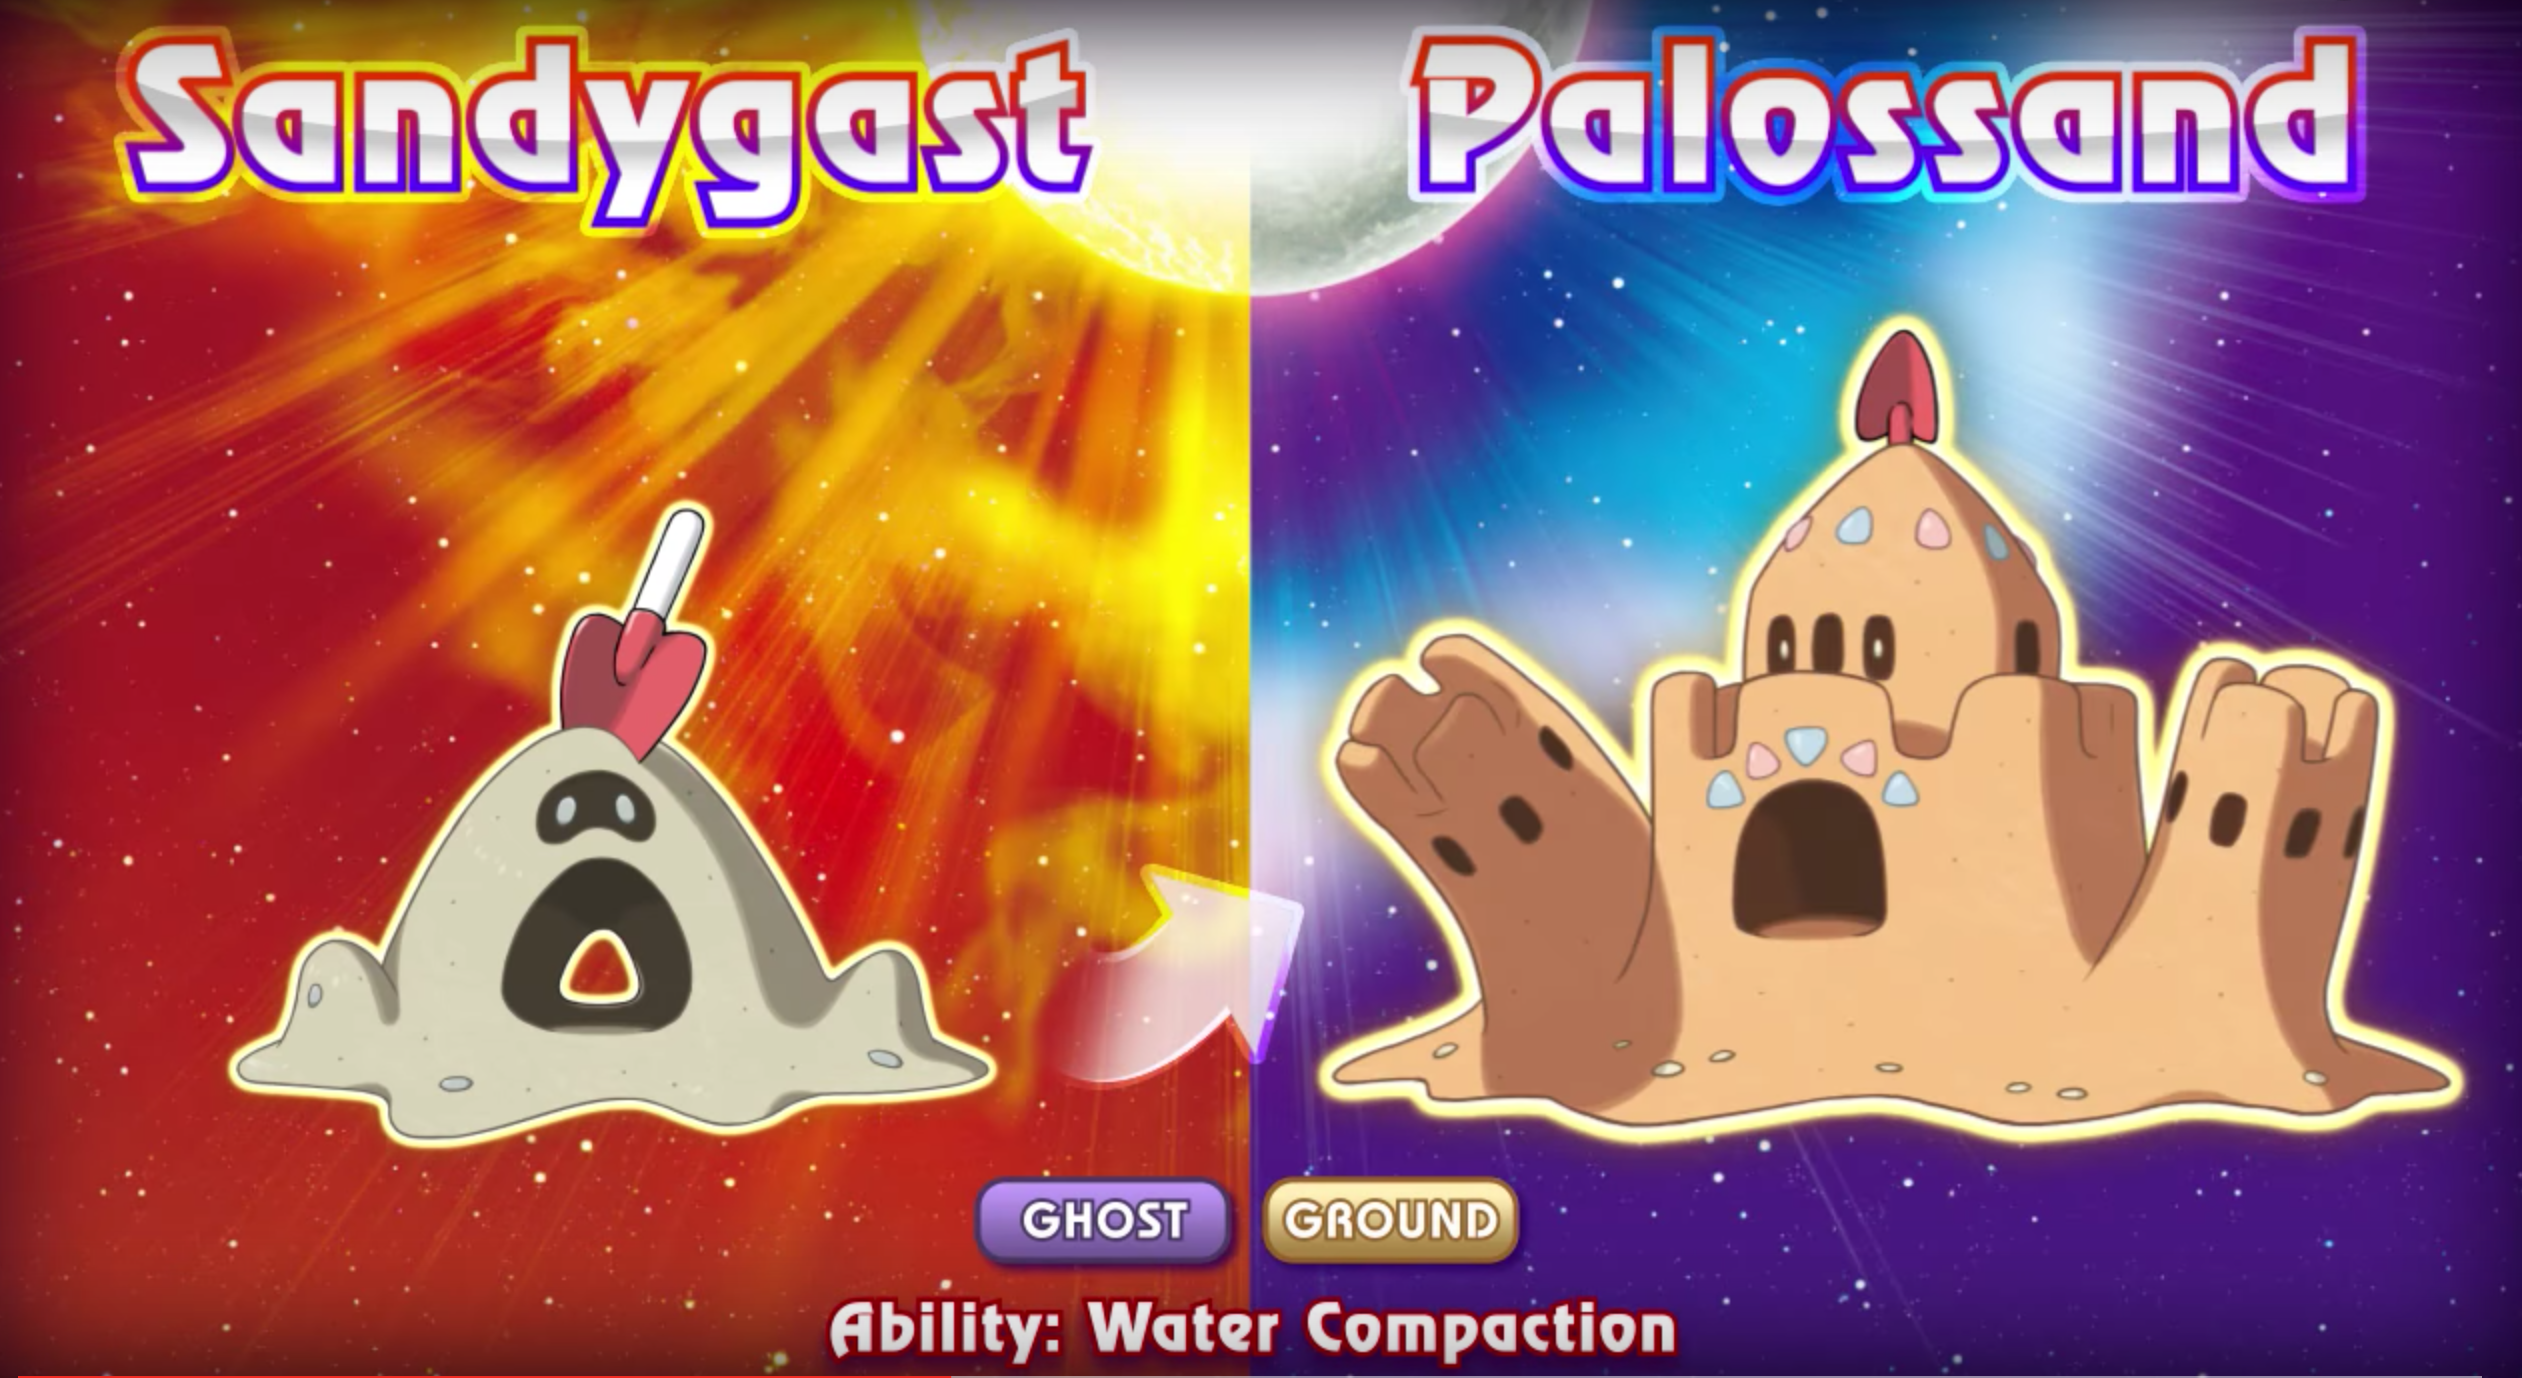 New Pokémon Sun and Moon trailer shows off Sandygast, Stufful and more.